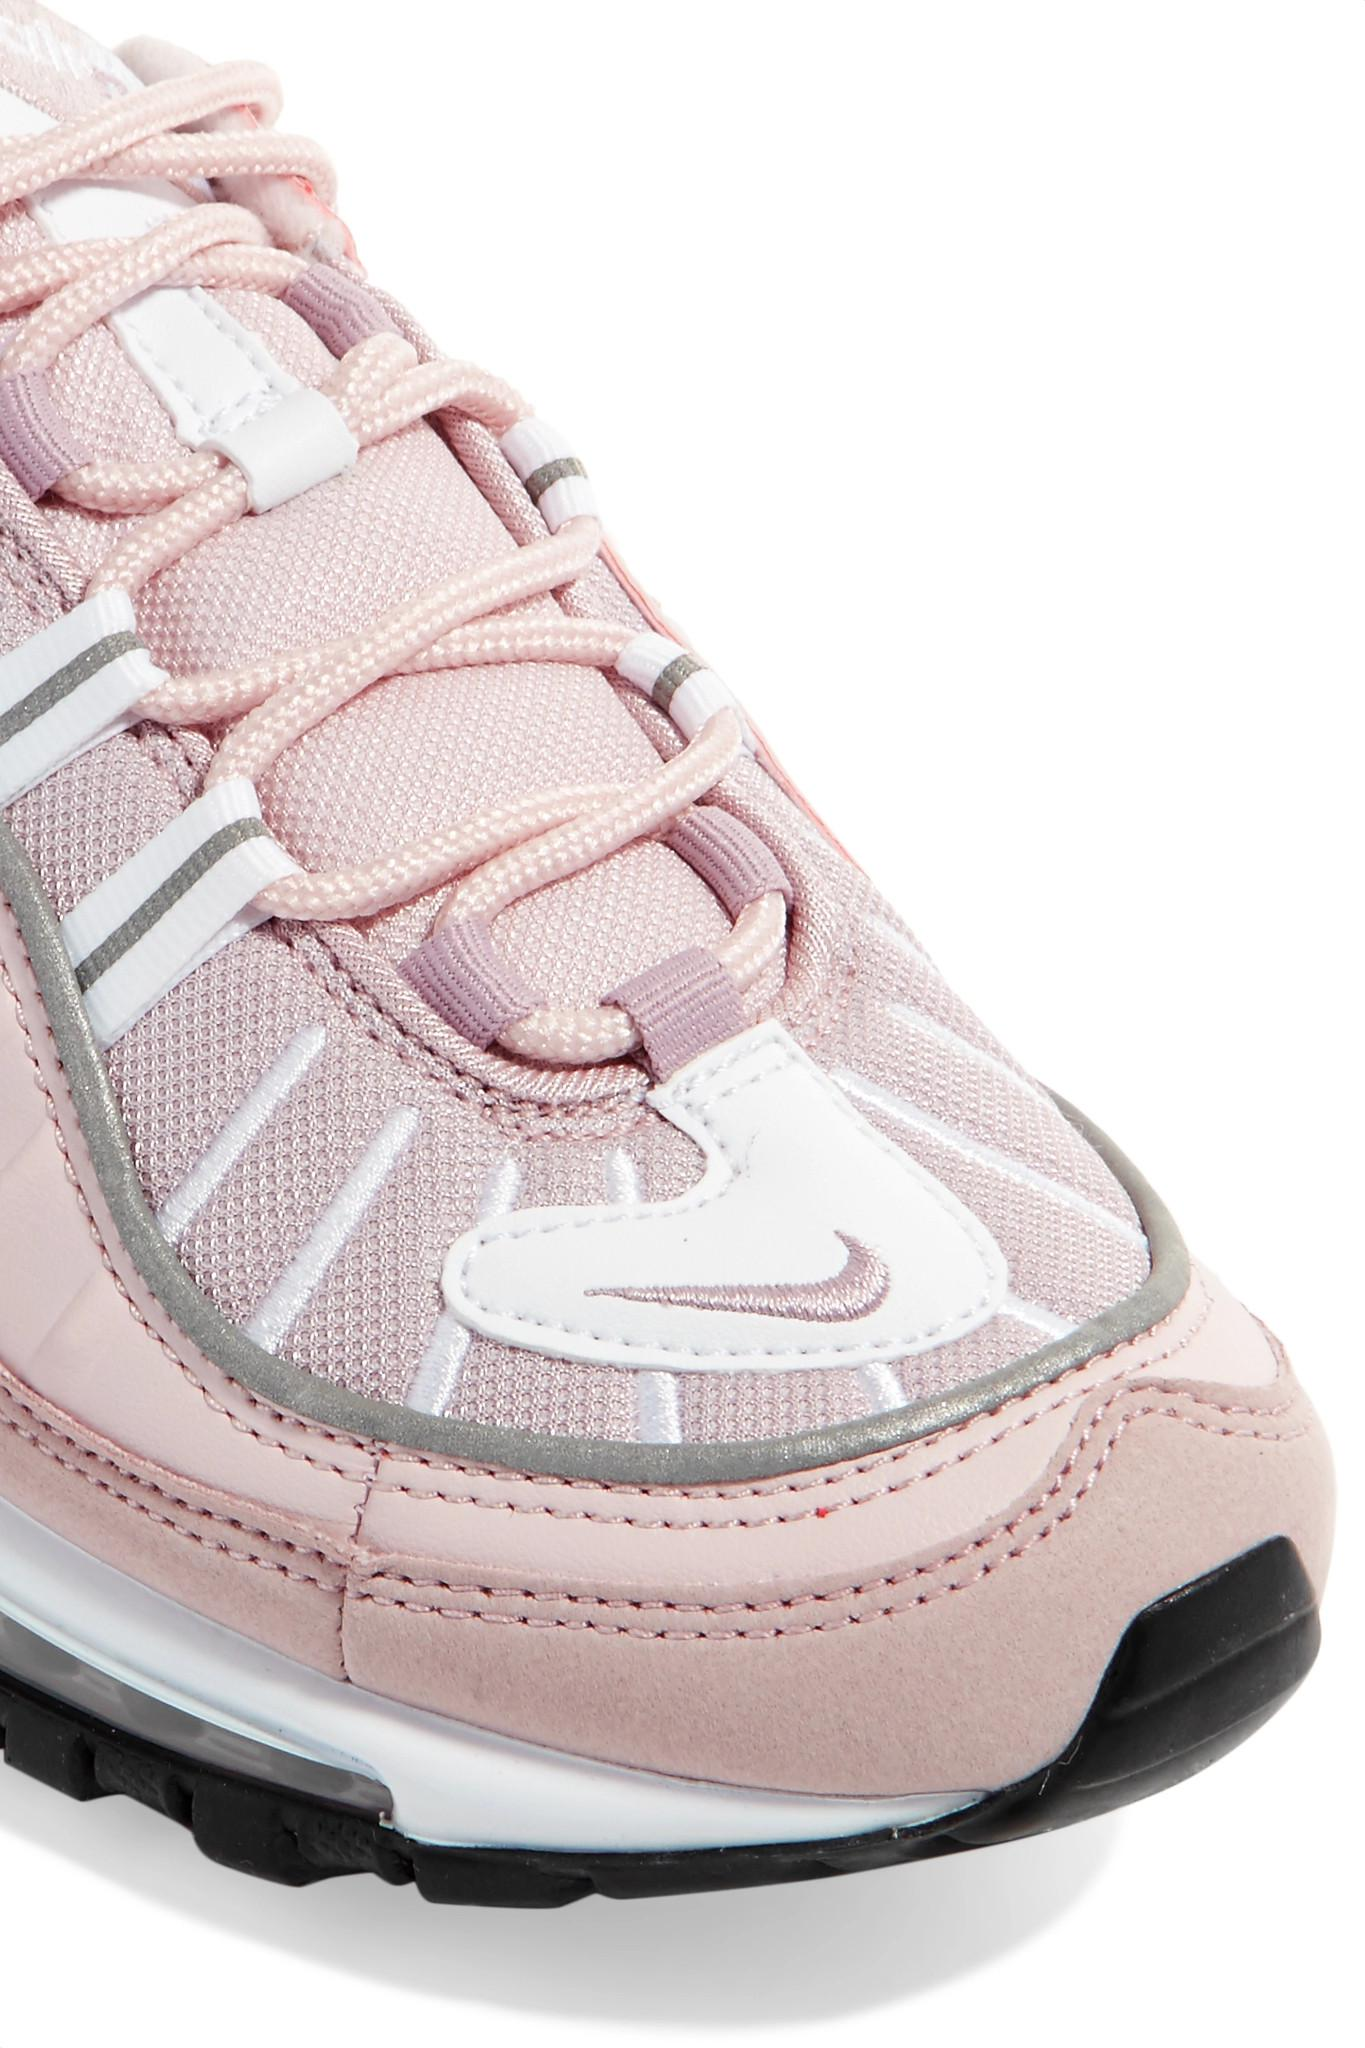 548fe7b9a3 nike-pastel-pink-Air-Max-98-Leather-Suede-And-Mesh-Sneakers.jpeg